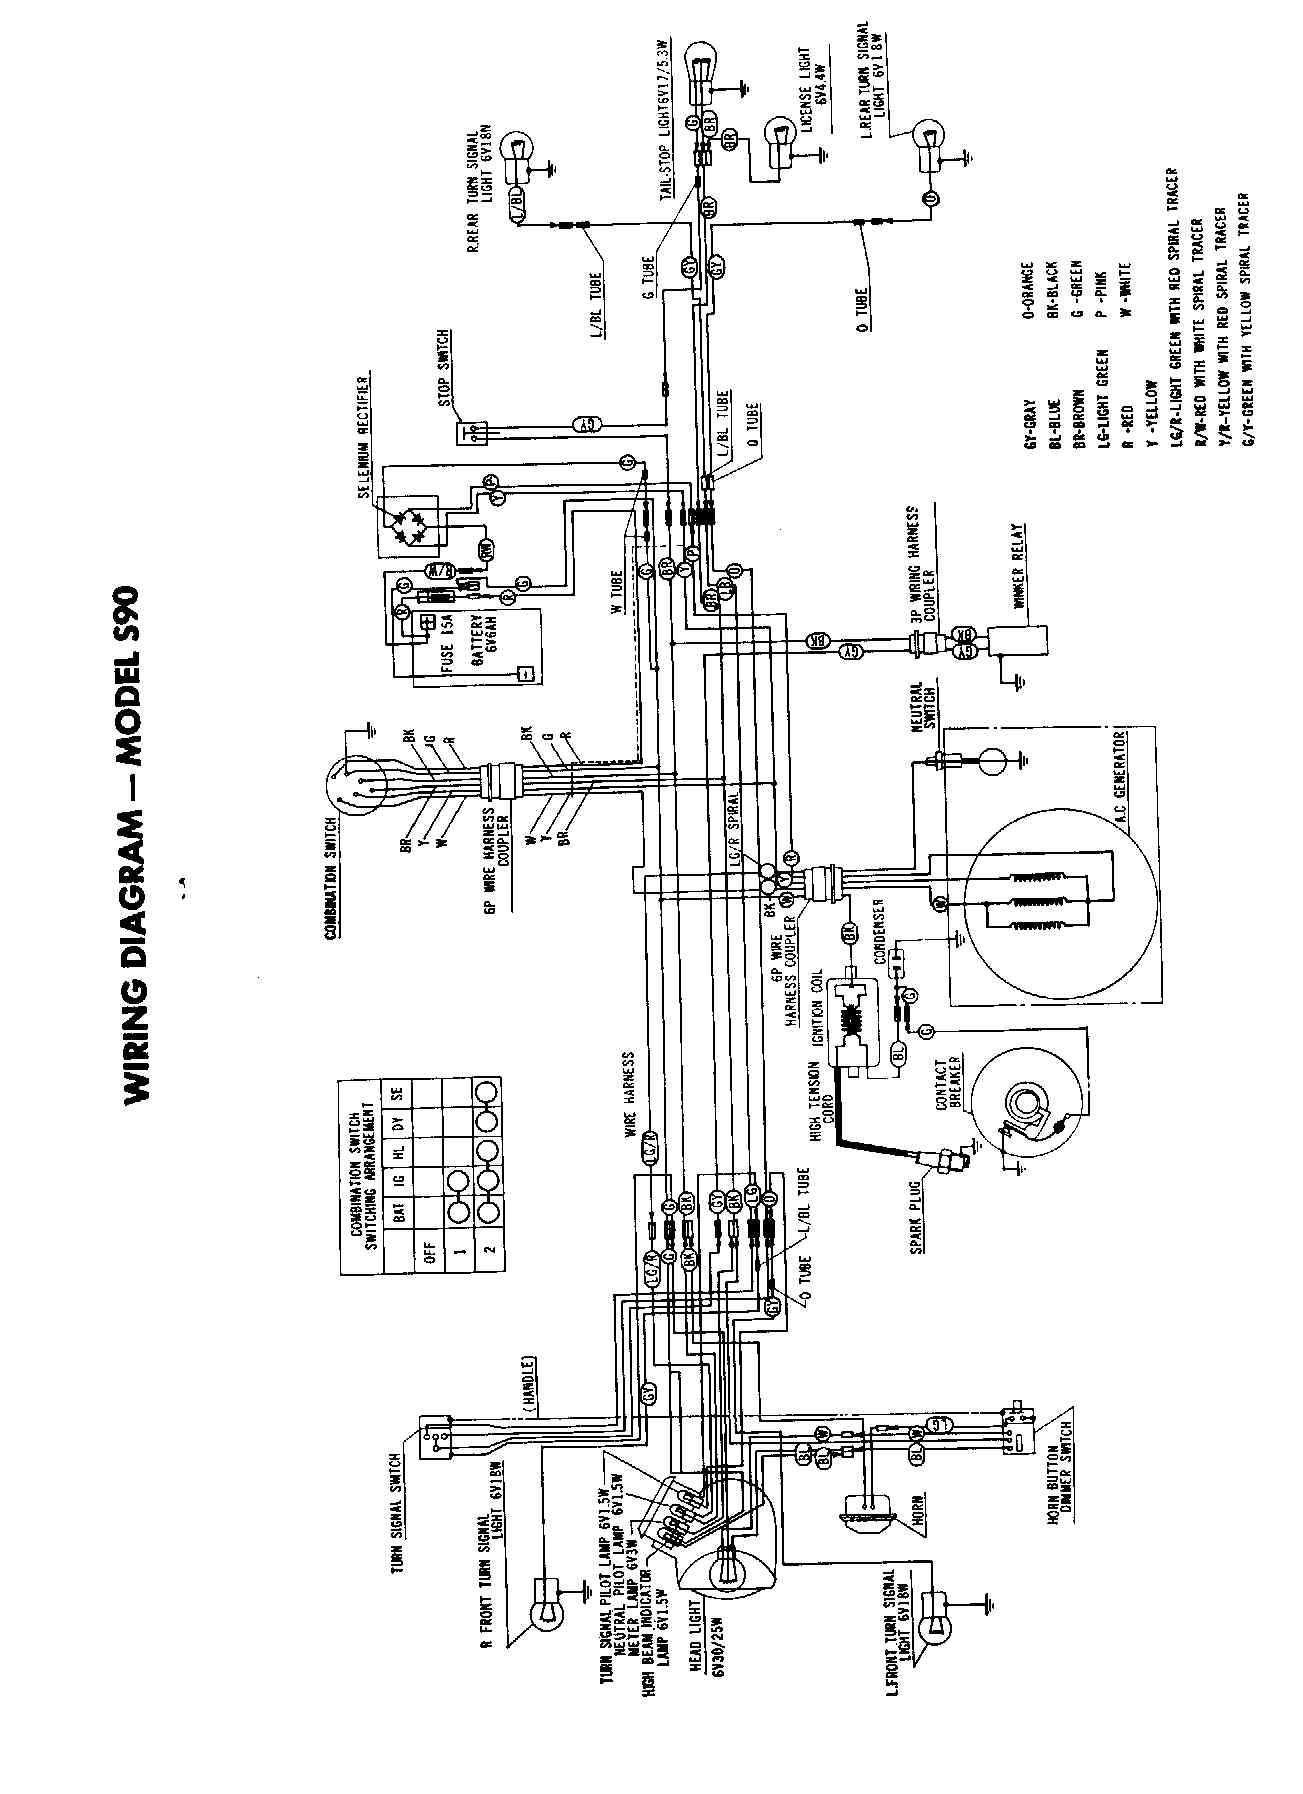 hight resolution of wiring diagrams plug wiring diagram xr200r wiring diagram